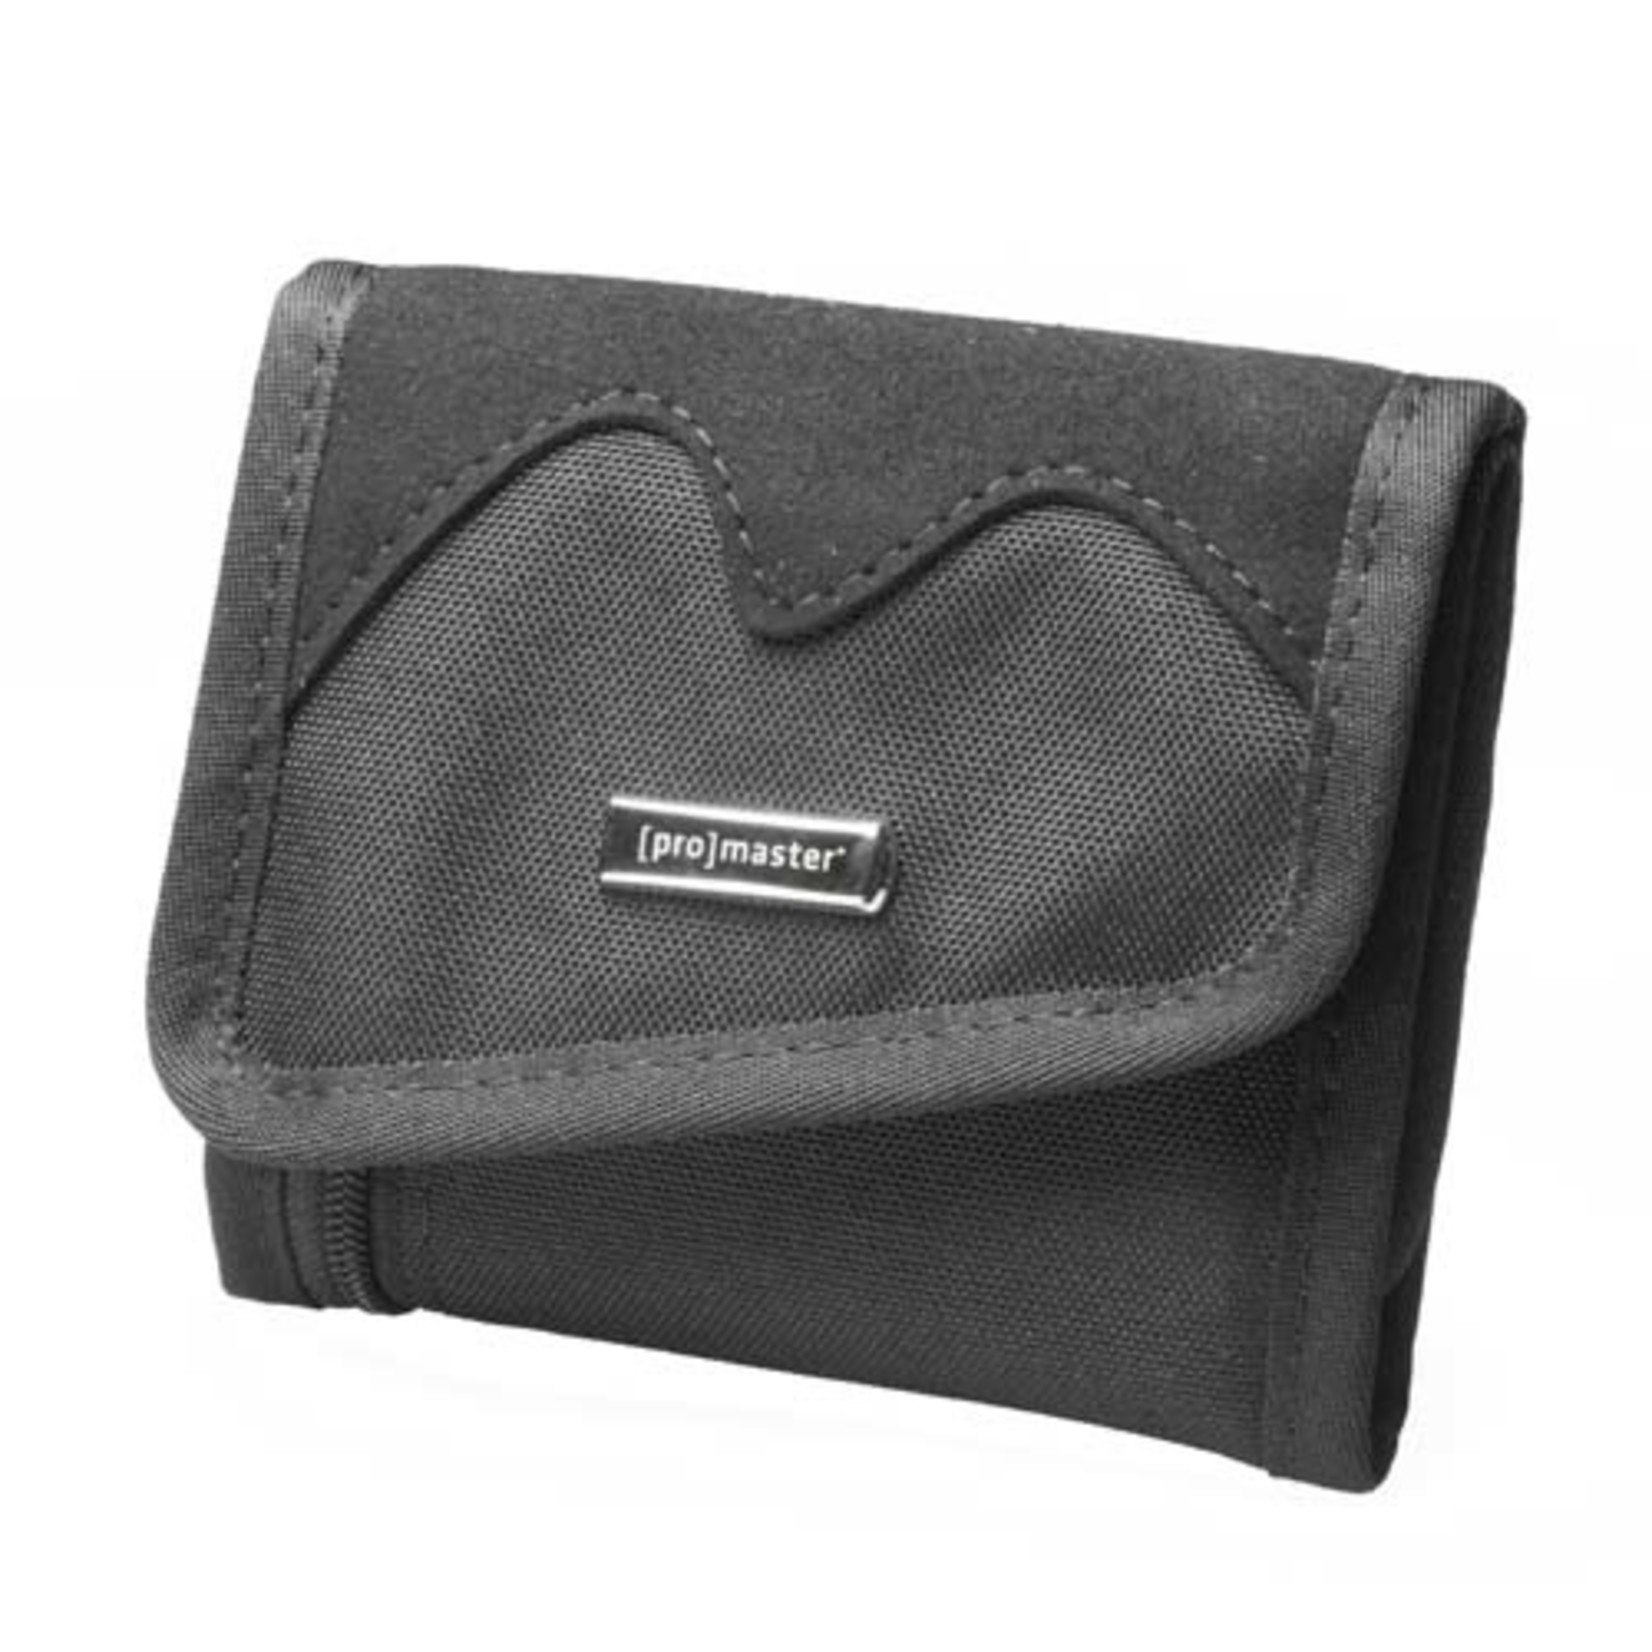 ProMaster Filter Case Holds 3 Filters up to 82mm - Holds 3 filters up to 82mm